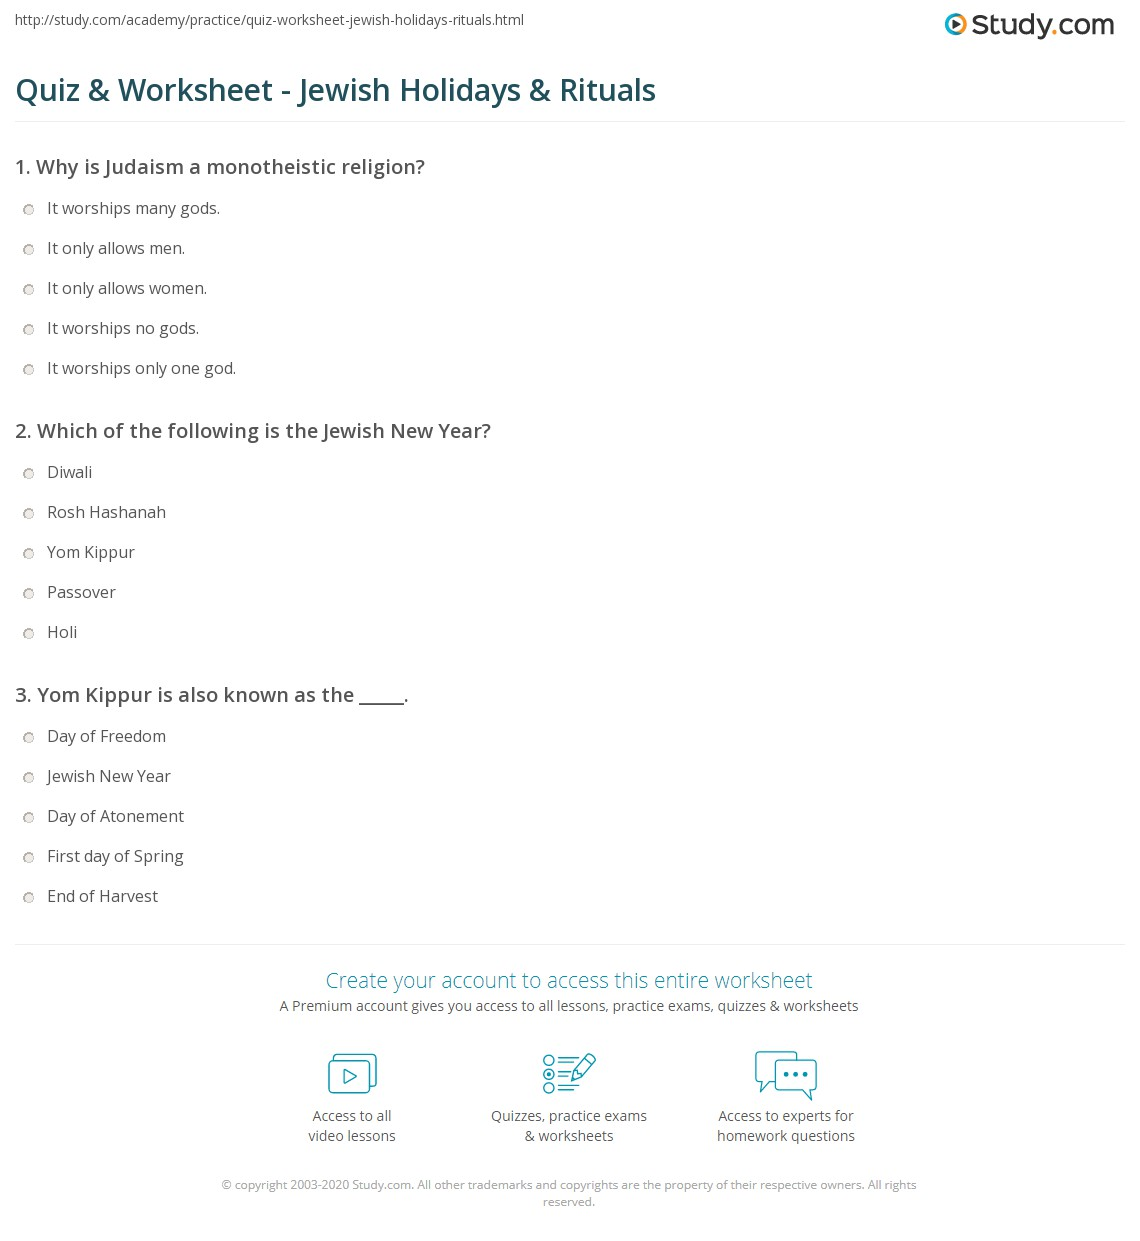 quiz worksheet jewish holidays rituals. Black Bedroom Furniture Sets. Home Design Ideas